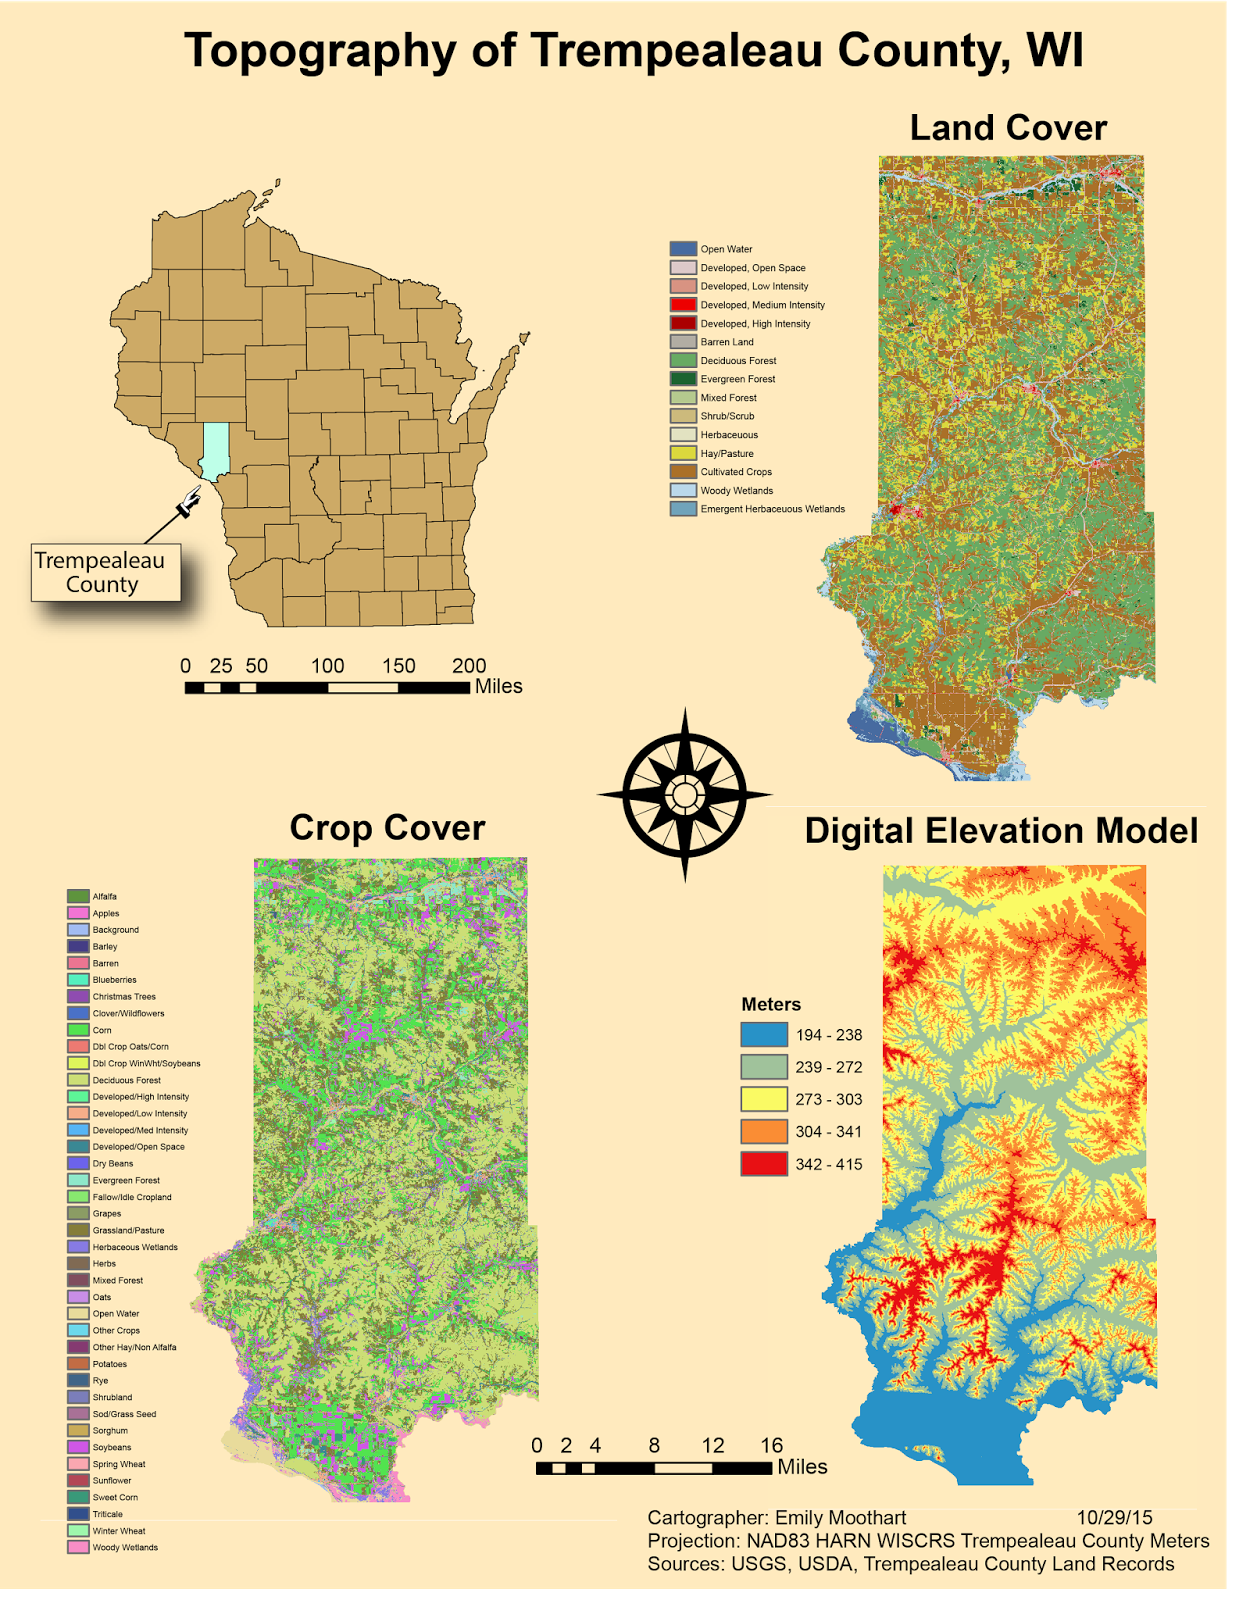 various topographic maps of trempealeau county wisconsin the maps will be used in later labs to create a suitability model for frac sand mining sites in